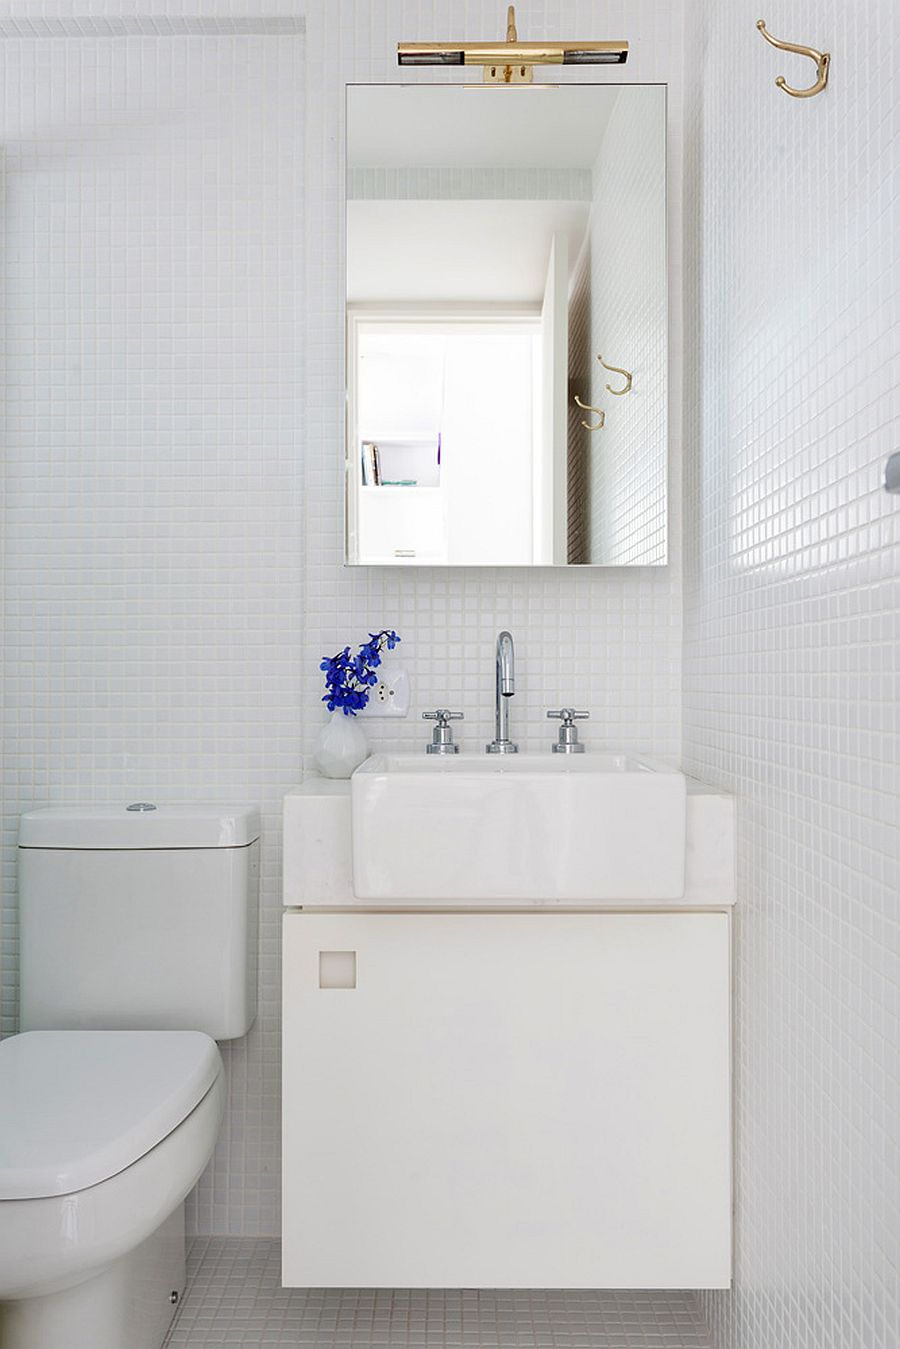 Corner vanity for the small, monochromatic bathroom in white with ample natural light